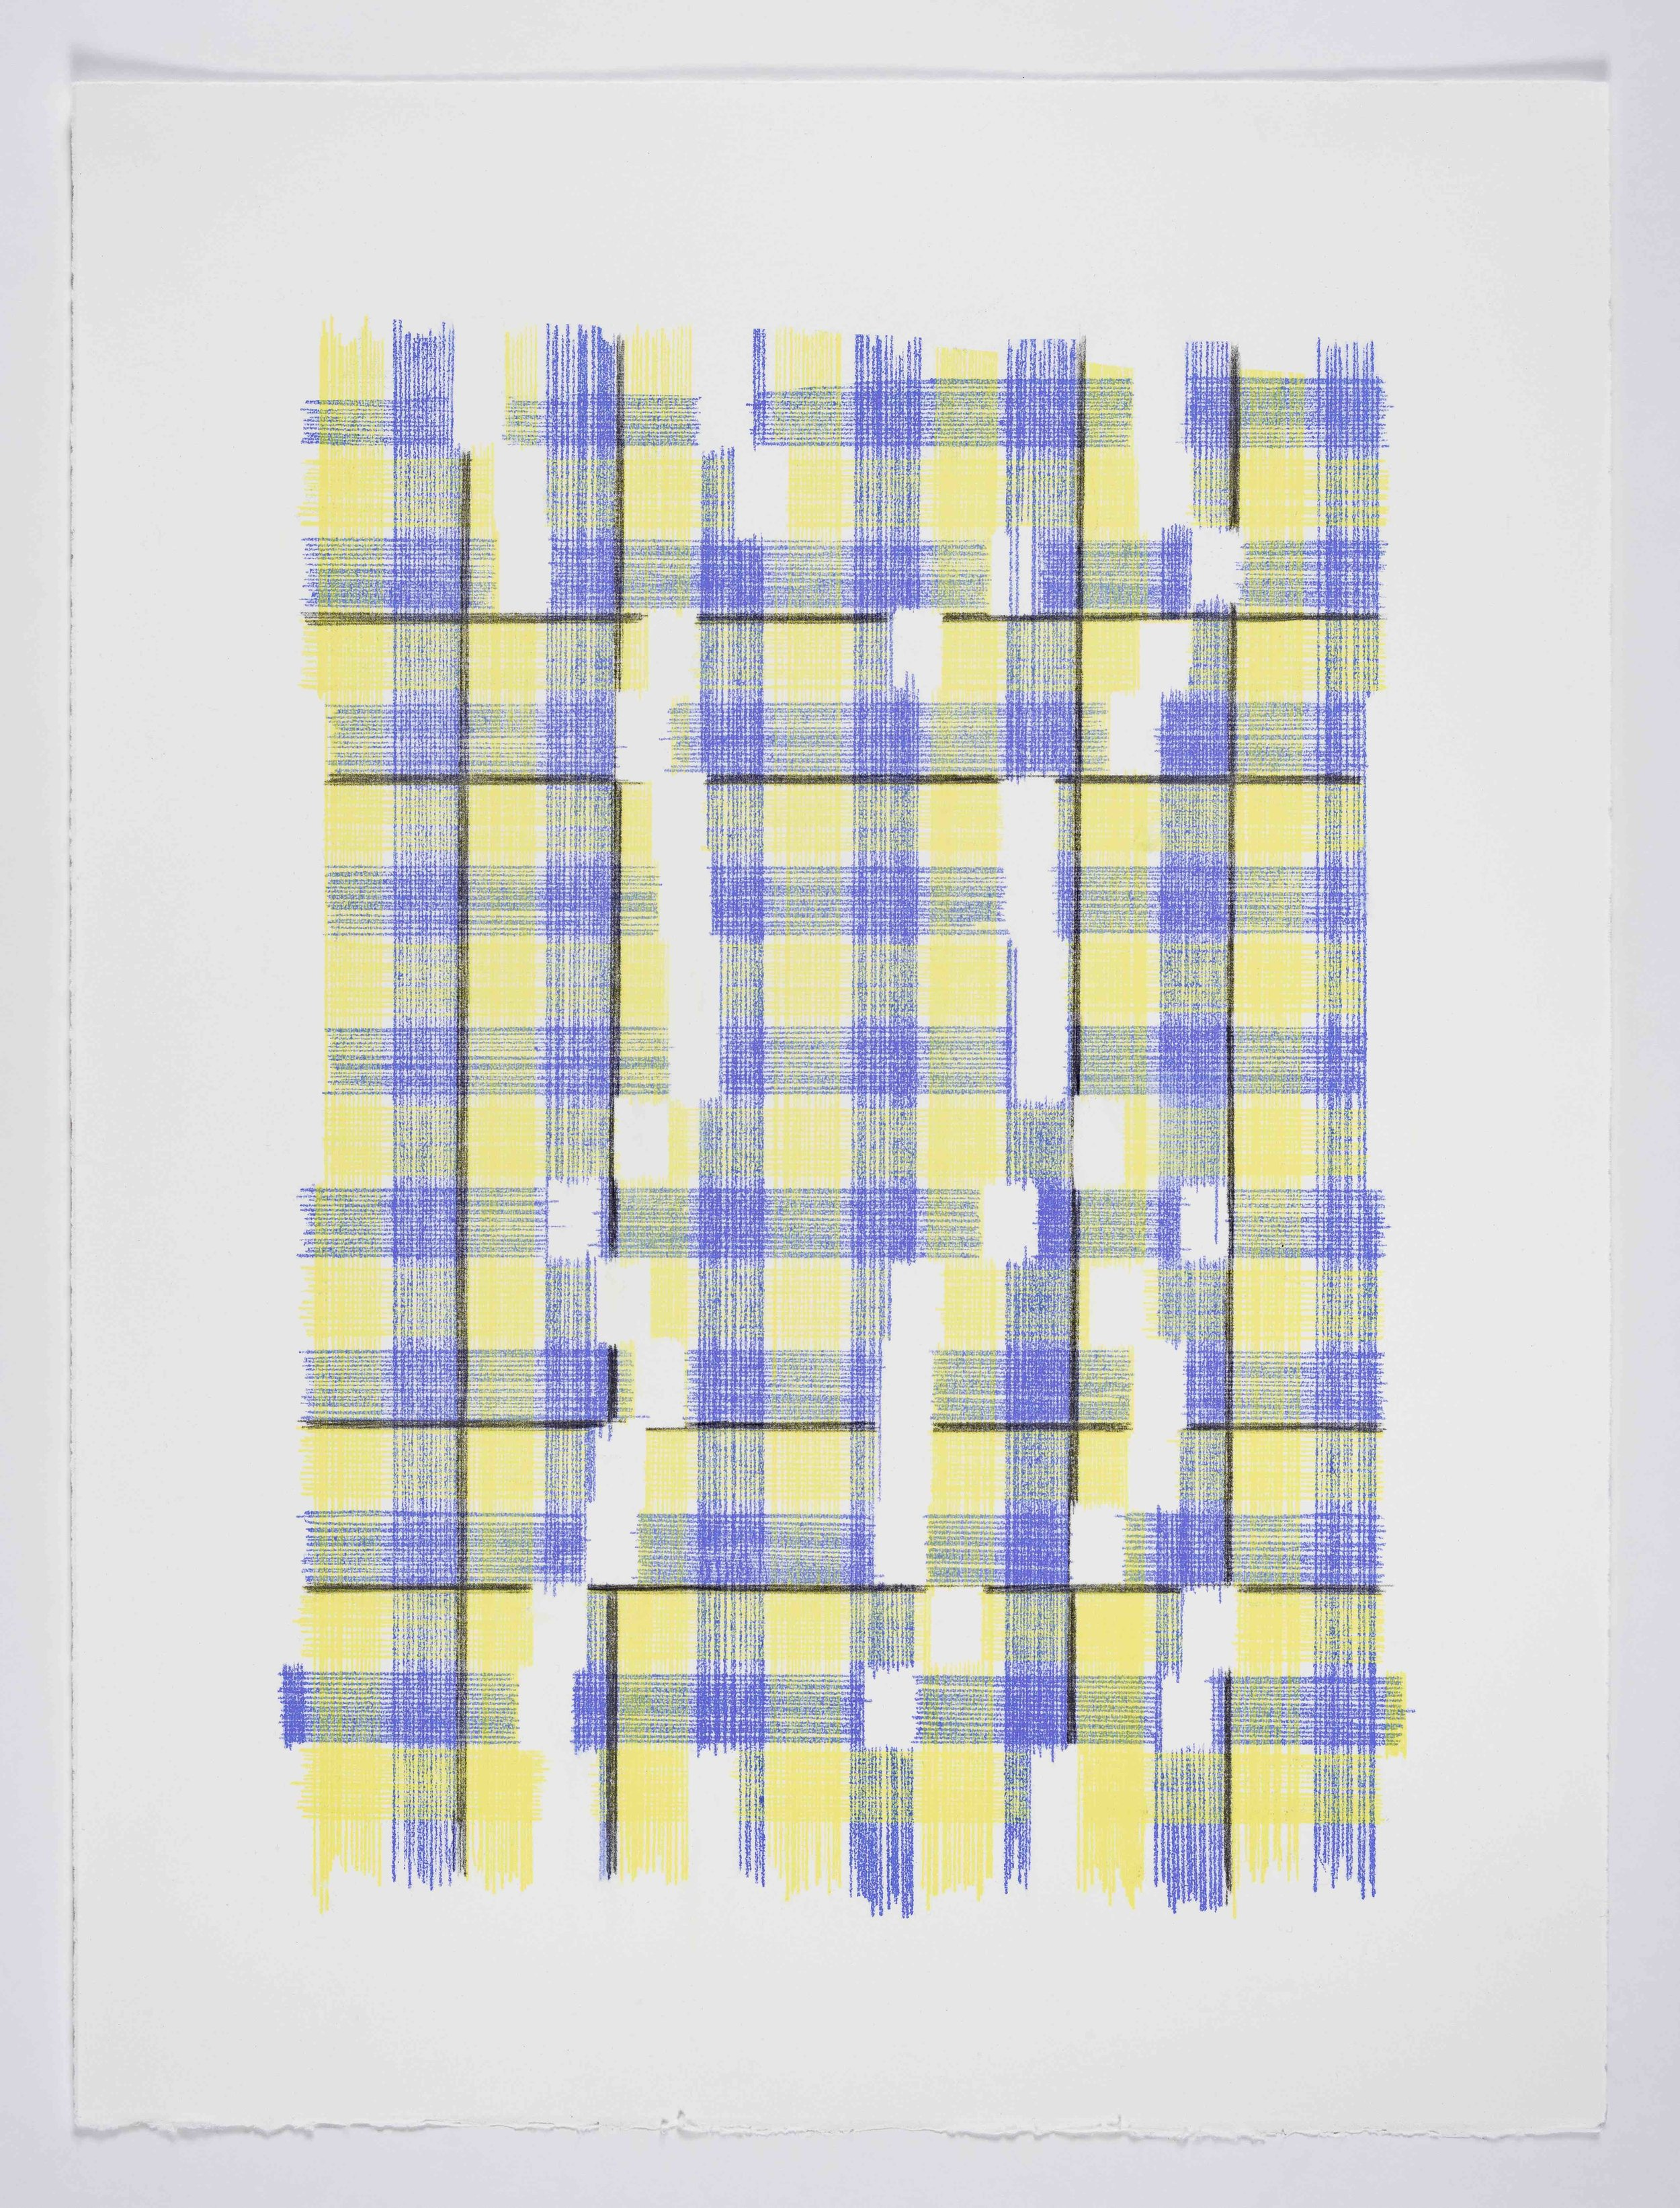 Forms of Normal Matter  (Plaid), 2019 Transfer pigment on paper 23x17.5 in (framed)